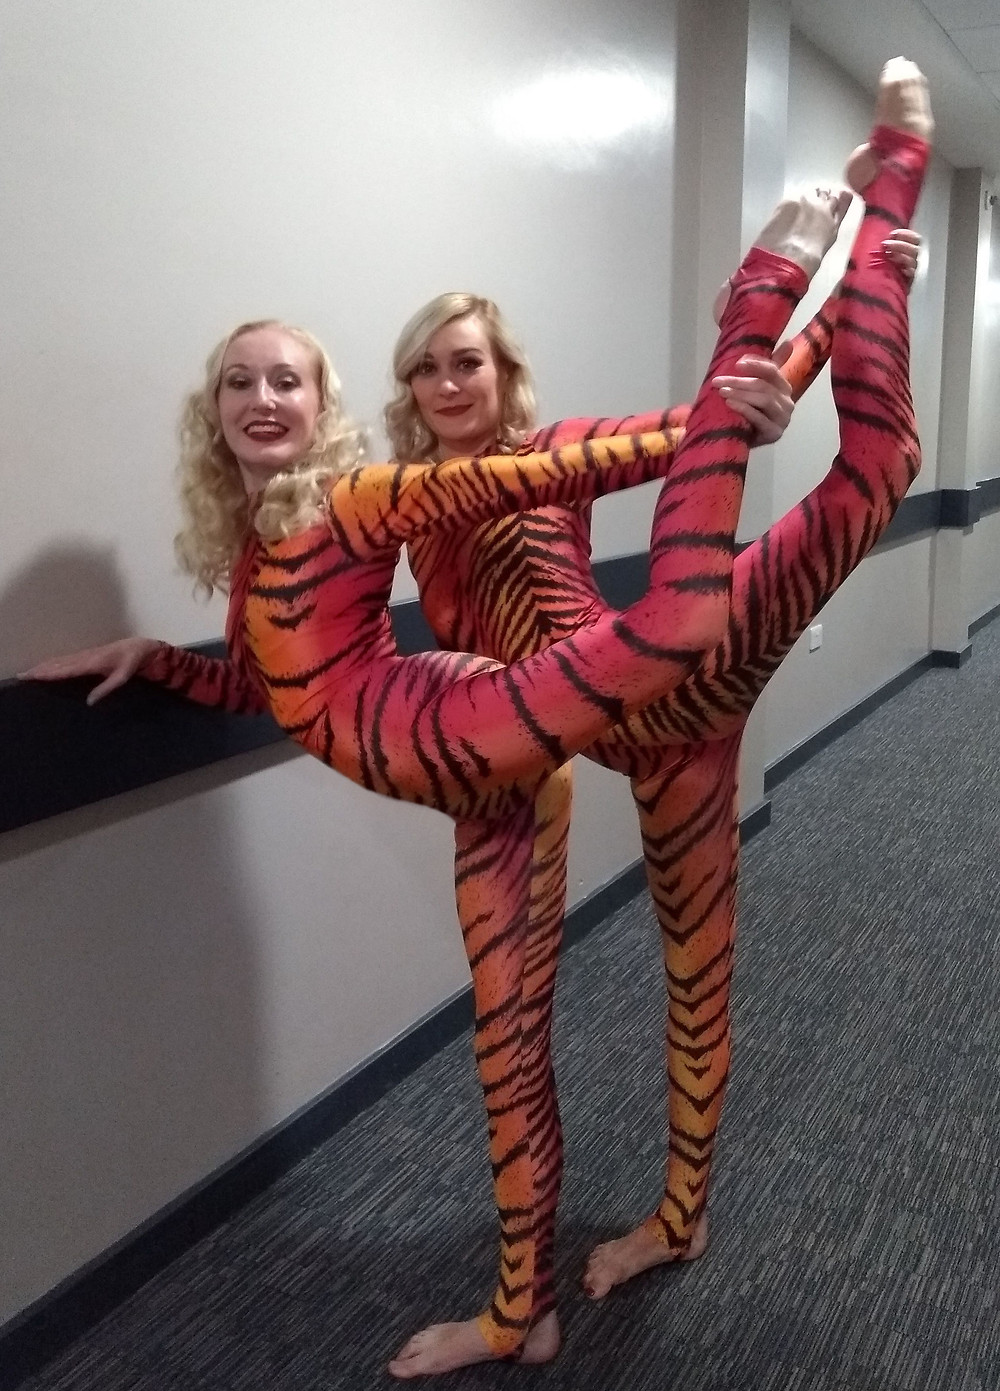 Two aerialists backstage, posing in pink-orange tiger catsuits